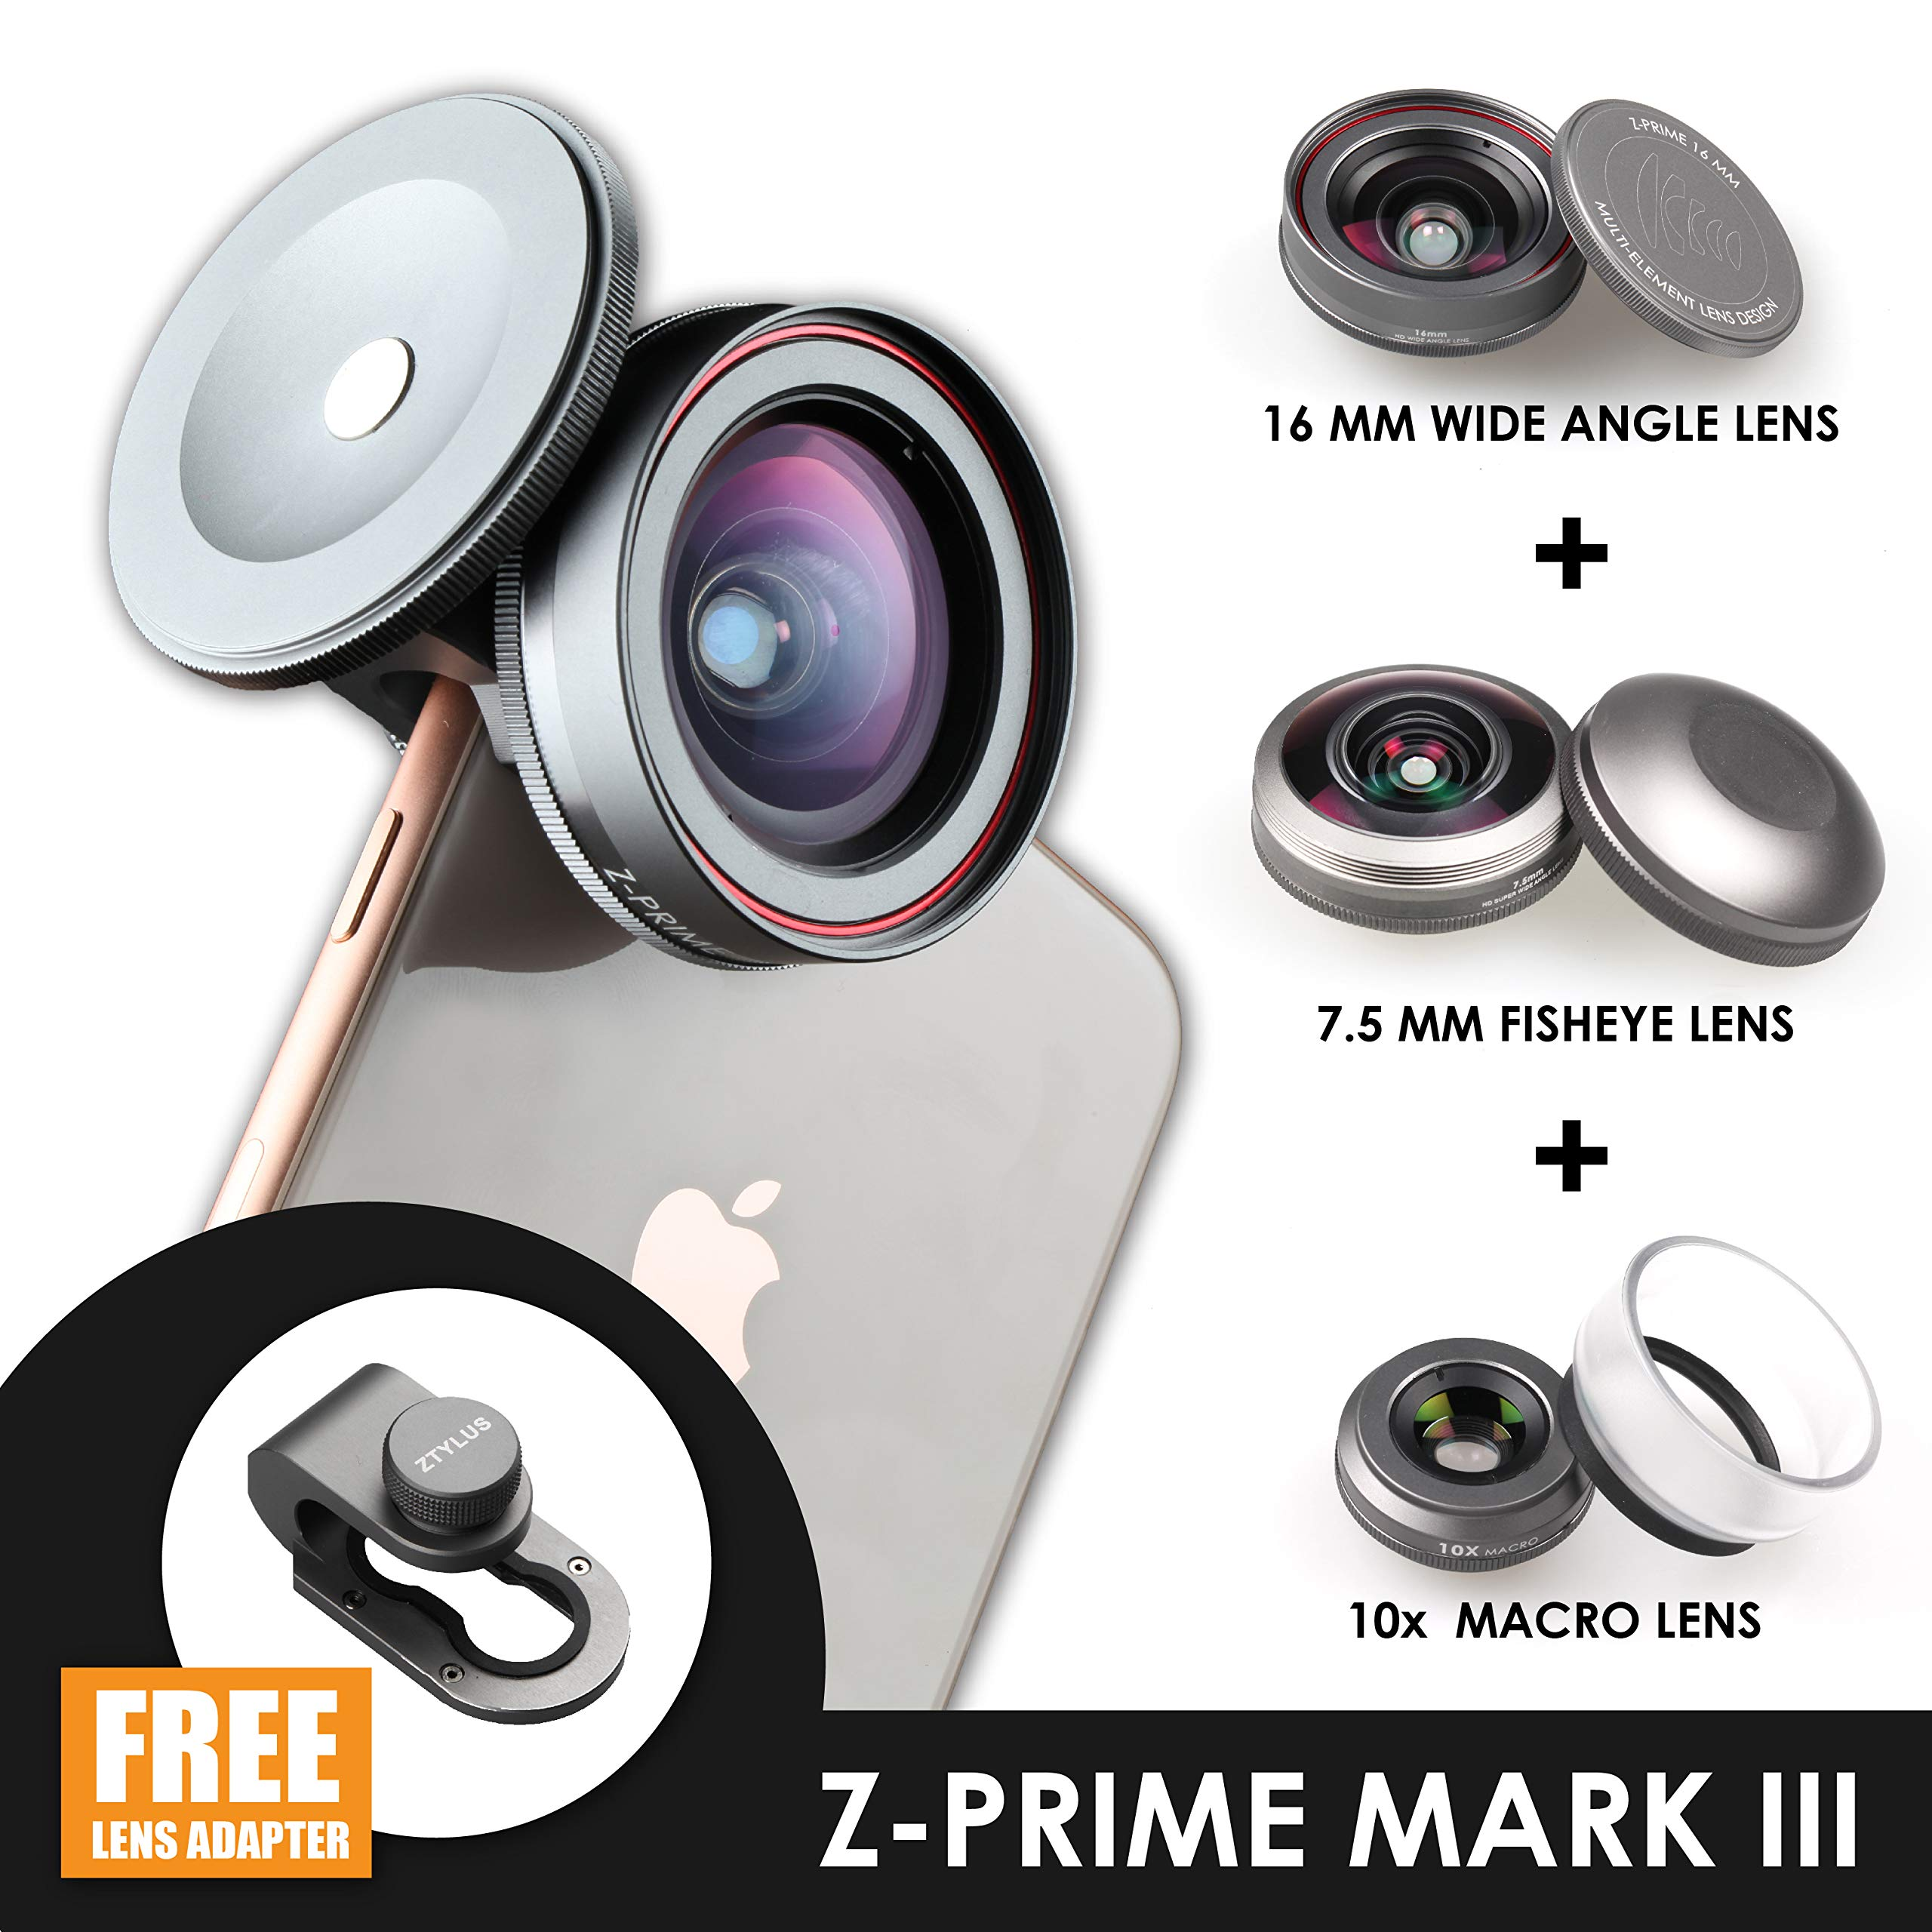 Ztylus Z-Prime Mark III 3+1 Lens Kit for Apple iPhone 7/8 / 7 Plus / 8 Plus/X/XS/XR/XS MAX (Fisheye + Wide Angle + Macro Lens + Lens Clip Adapter) (Mark III)